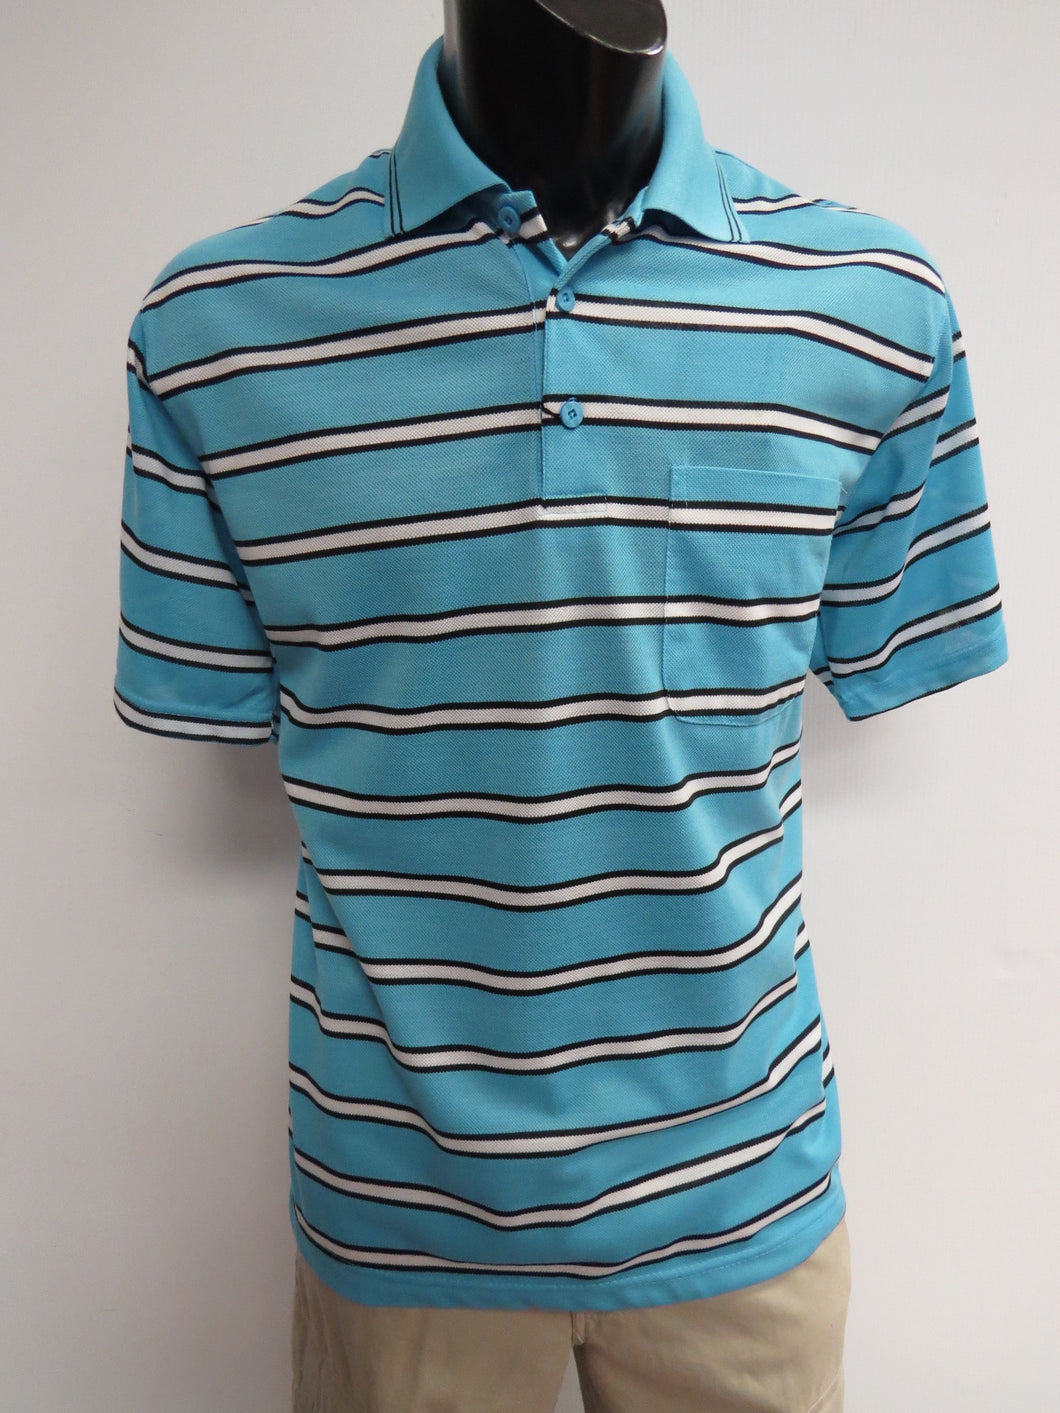 White Horse | BCT8004-2 | Polo T-Shirt | Teal